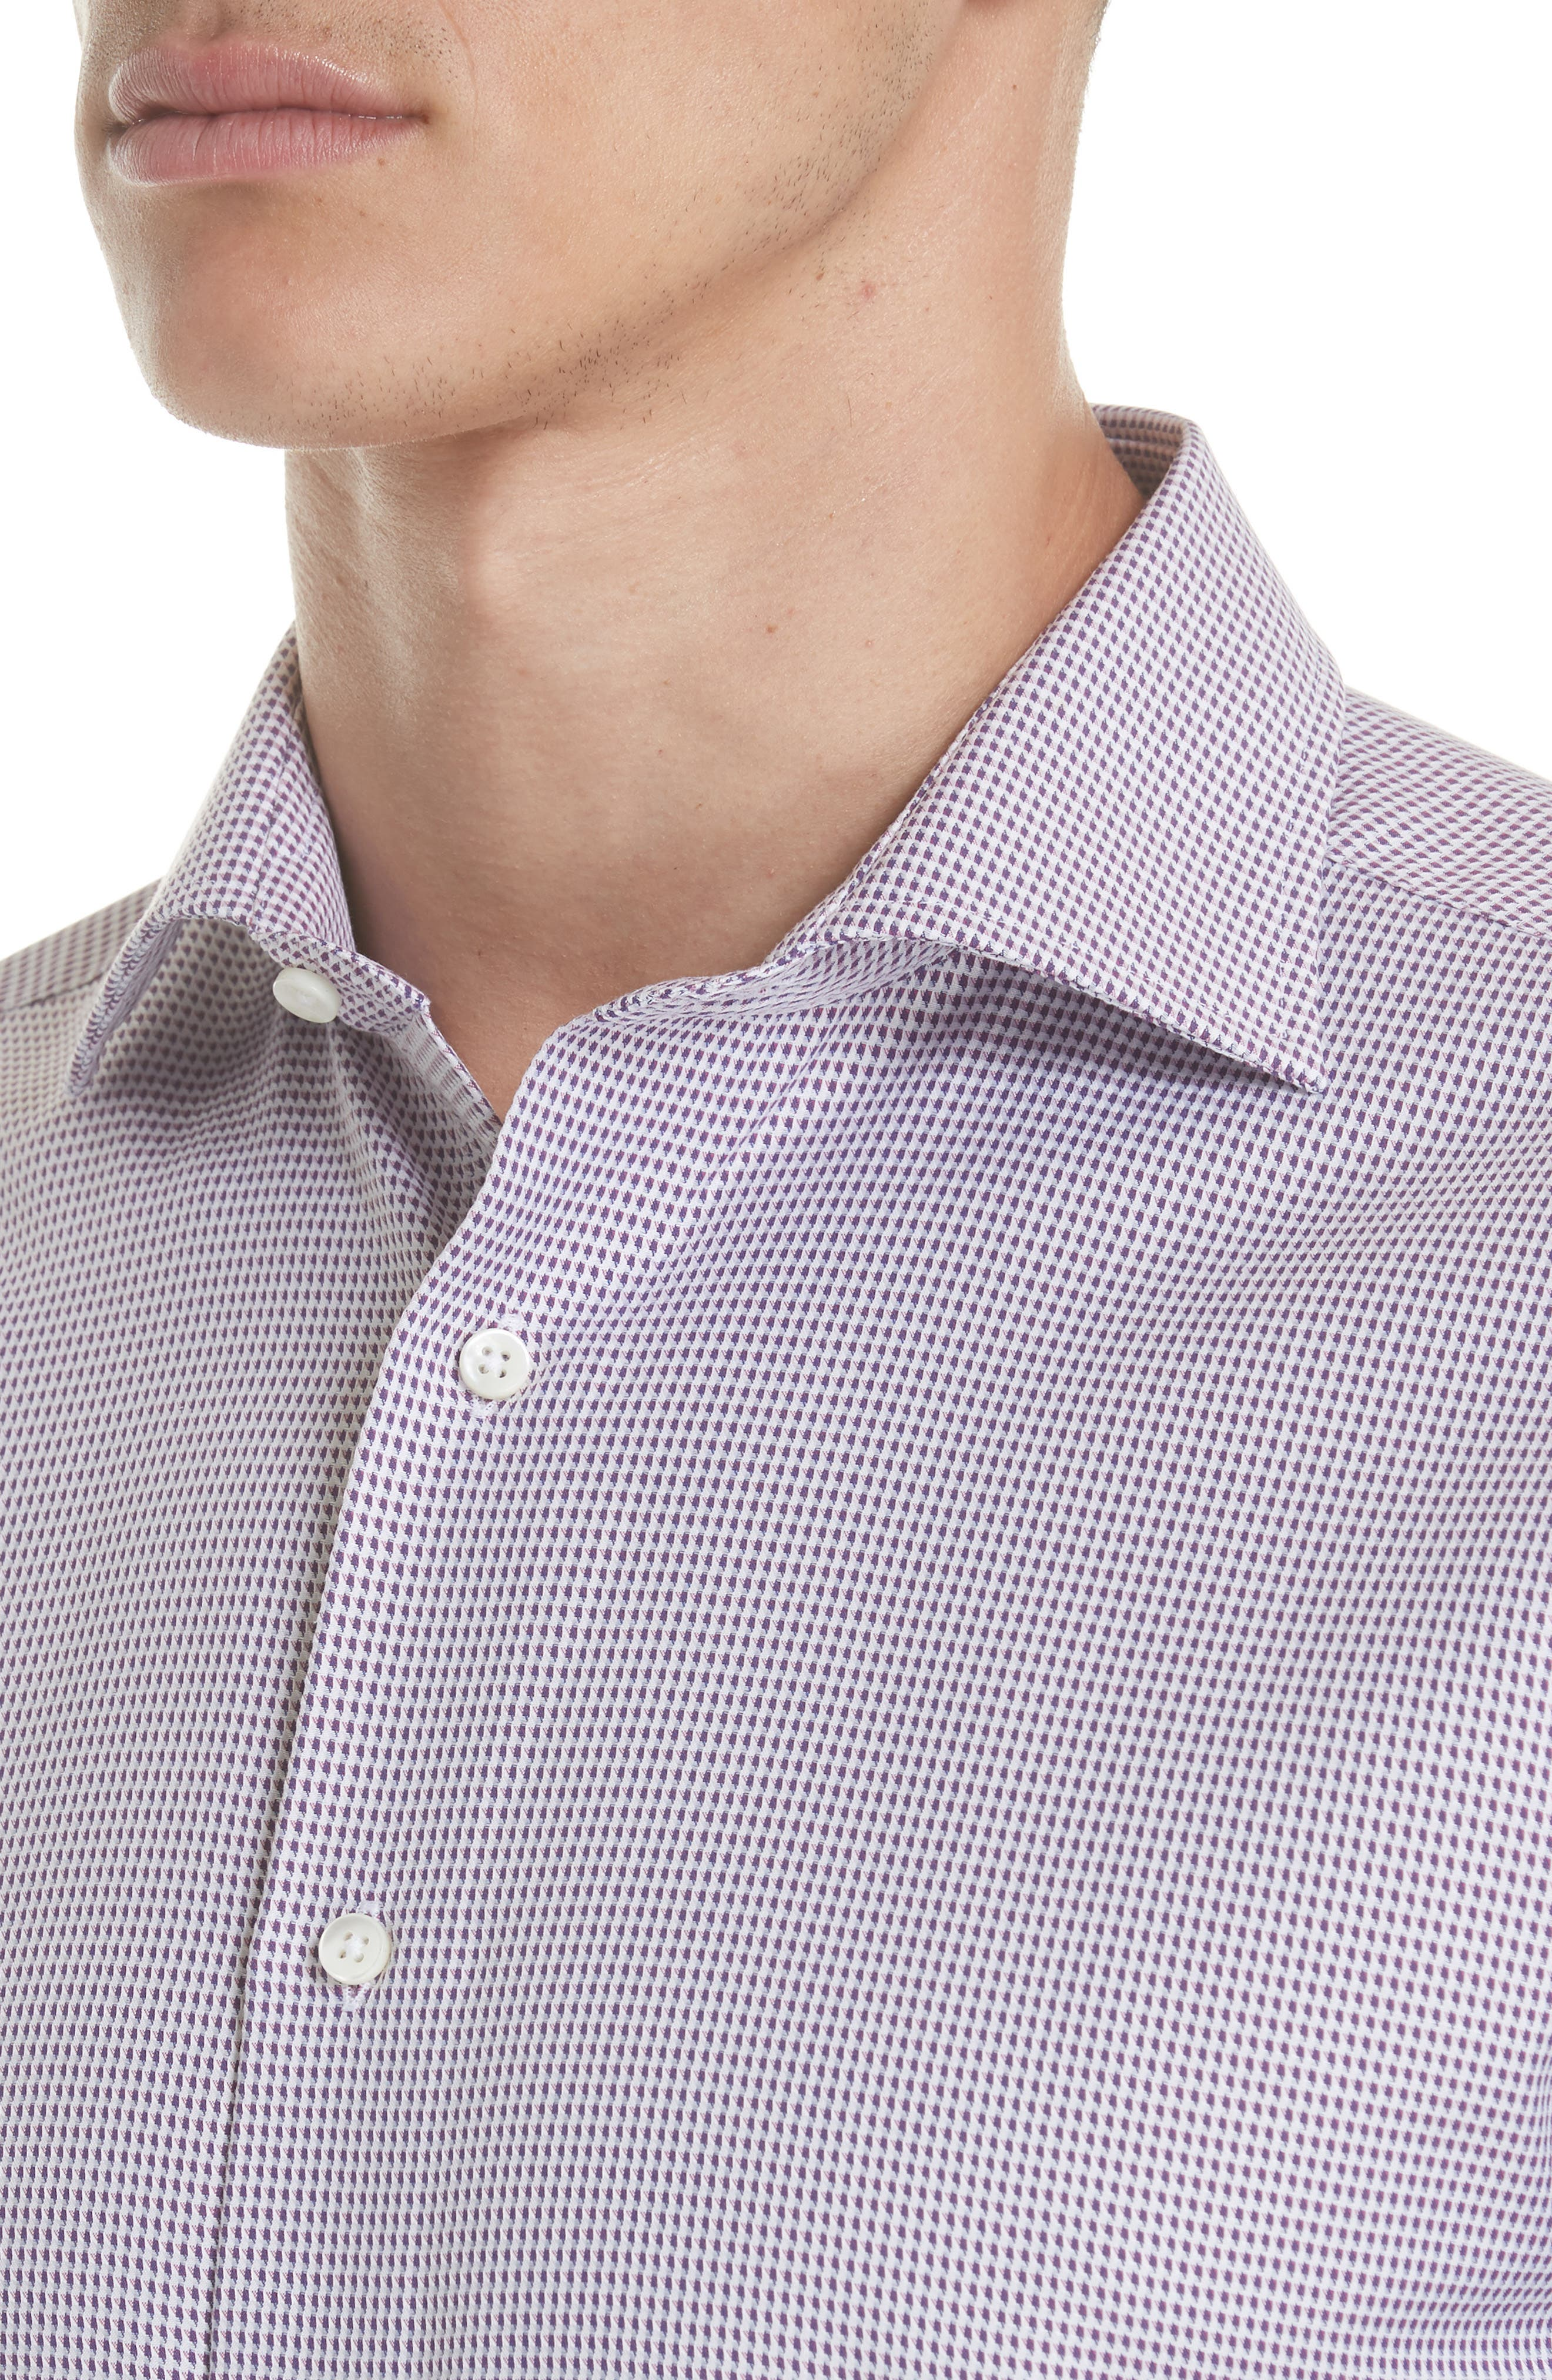 Regular Fit Print Dress Shirt,                             Alternate thumbnail 2, color,                             501